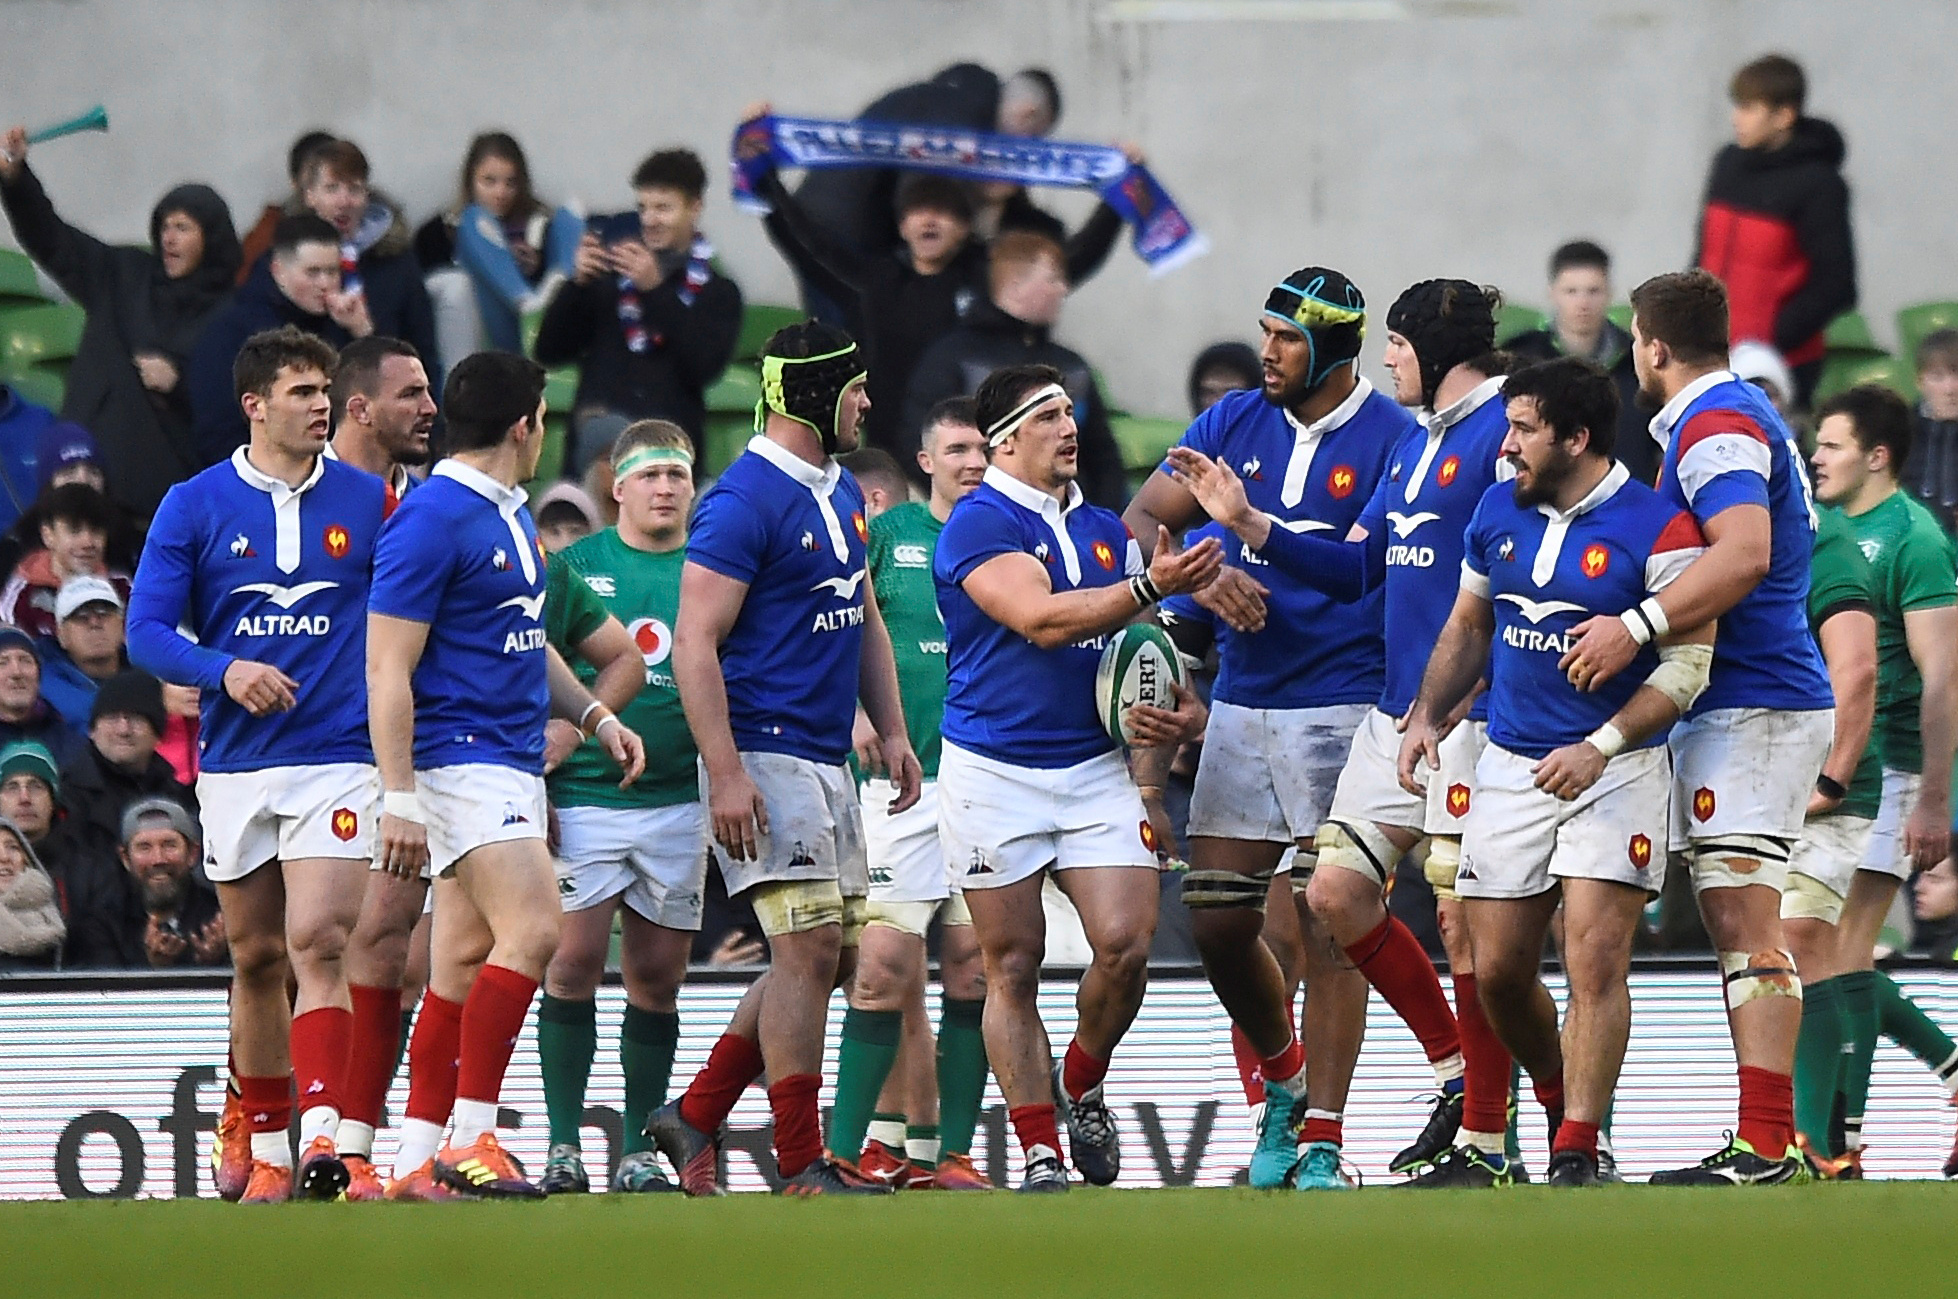 Ireland v France live in the Six Nations from the Aviva